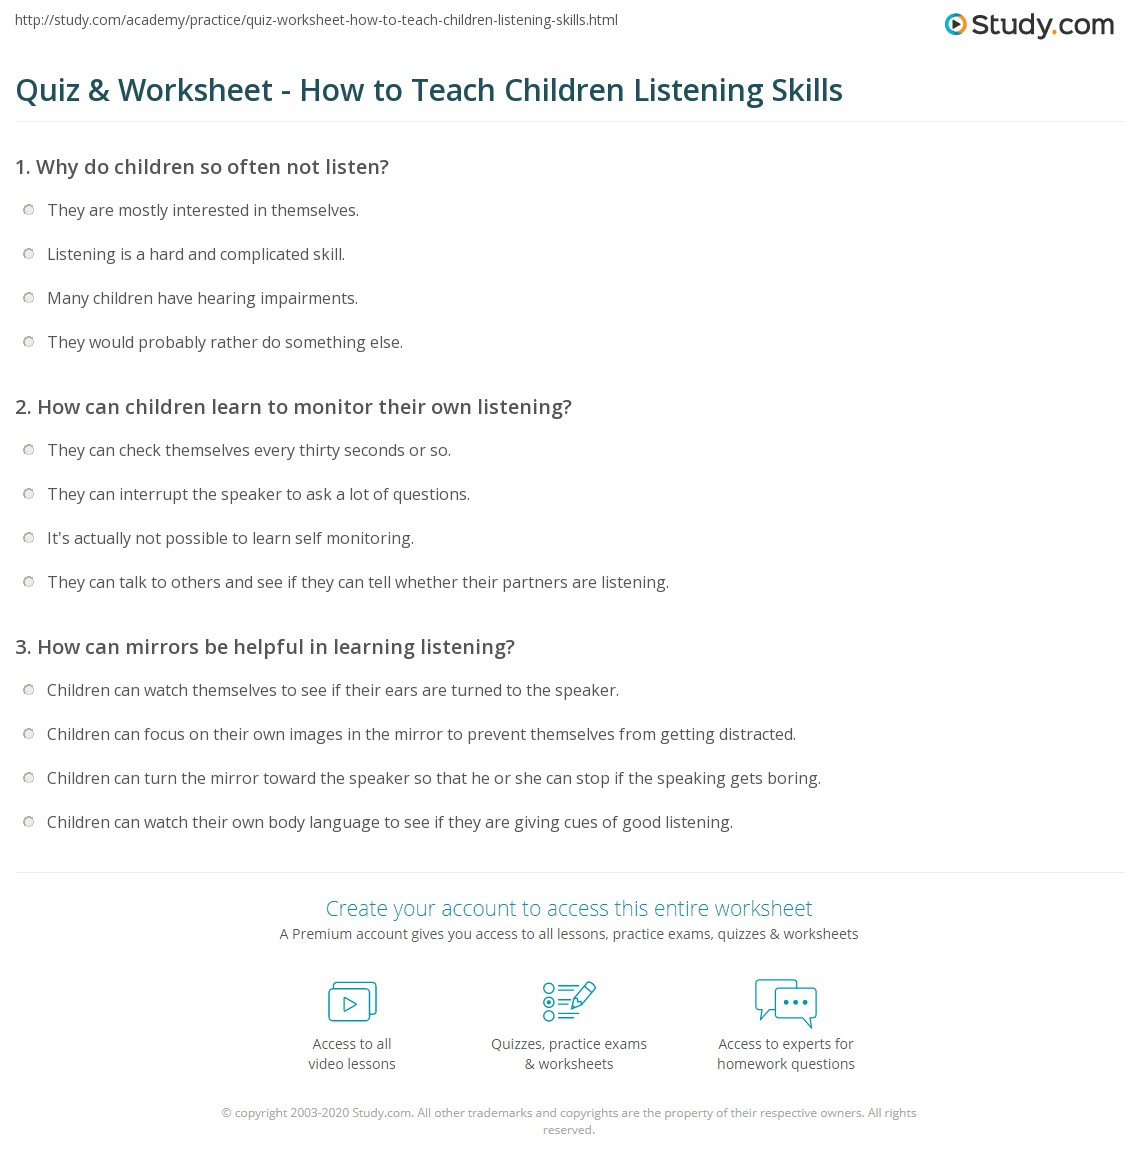 Quiz & Worksheet - How to Teach Children Listening Skills | Study.com